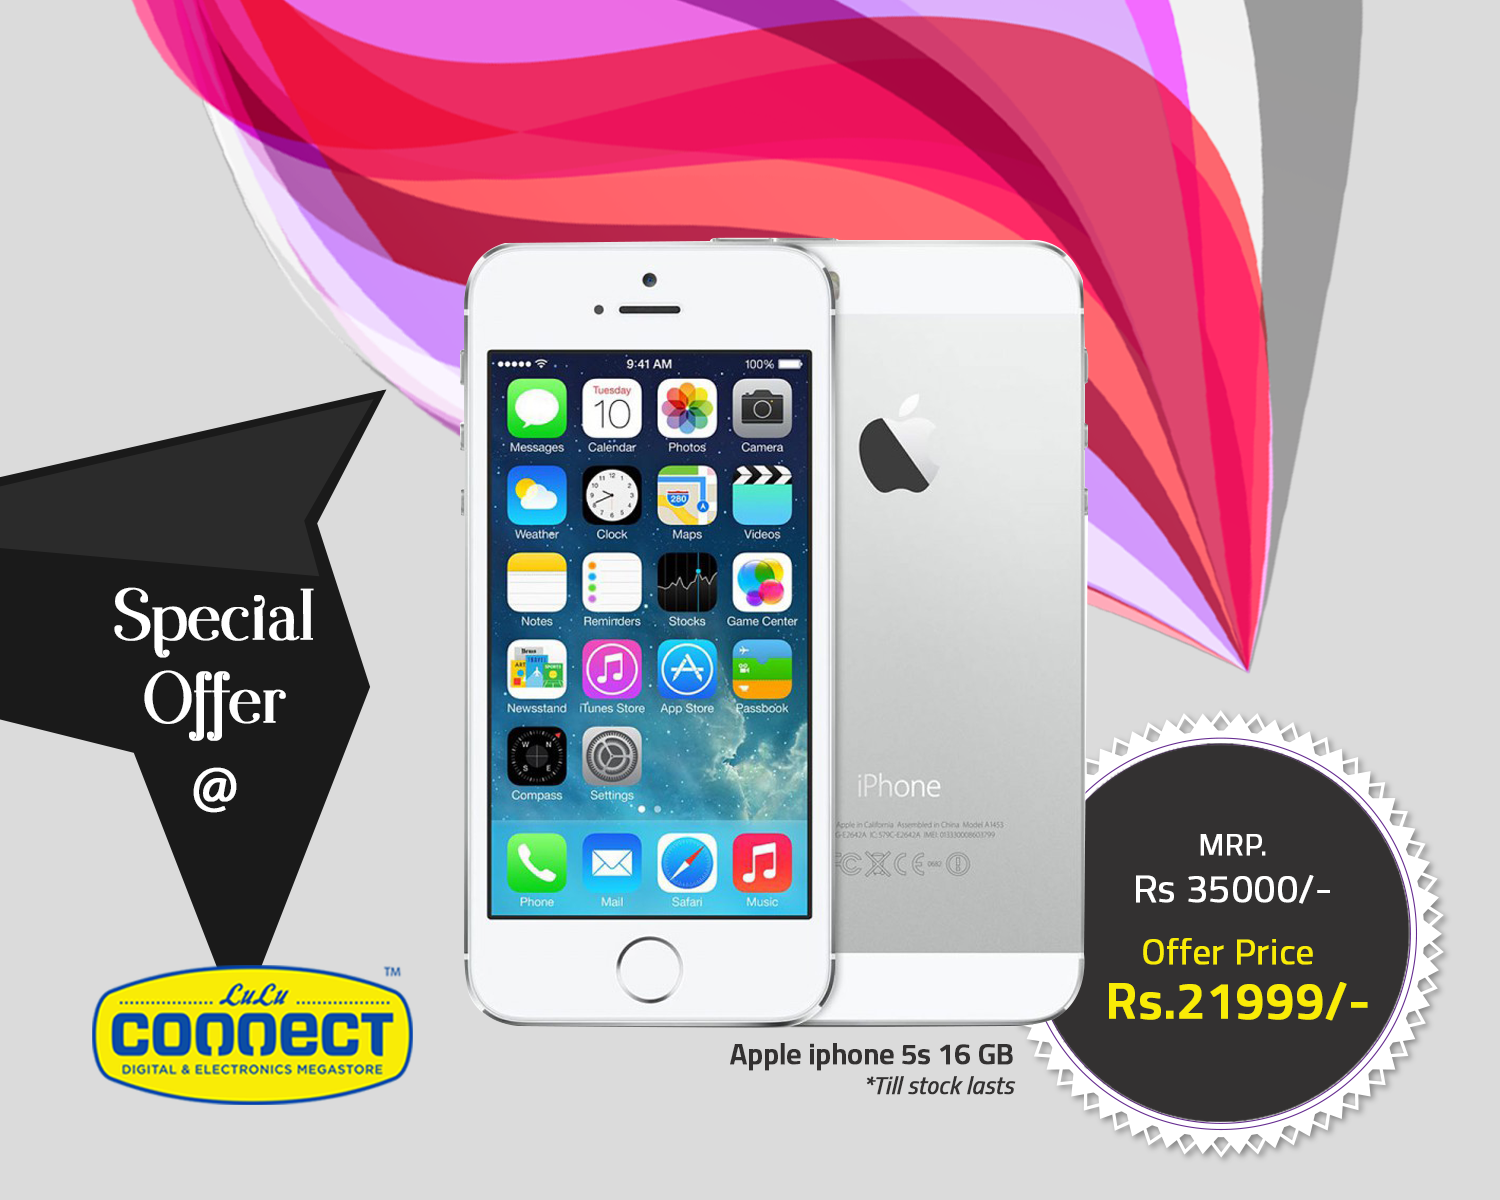 It S Now Or Never Get Hold Of This Stunning Offer From Lulu Connect Grab This Special Offer Hurry For More Super Apple Iphone 5s Iphone 5s Special Offer